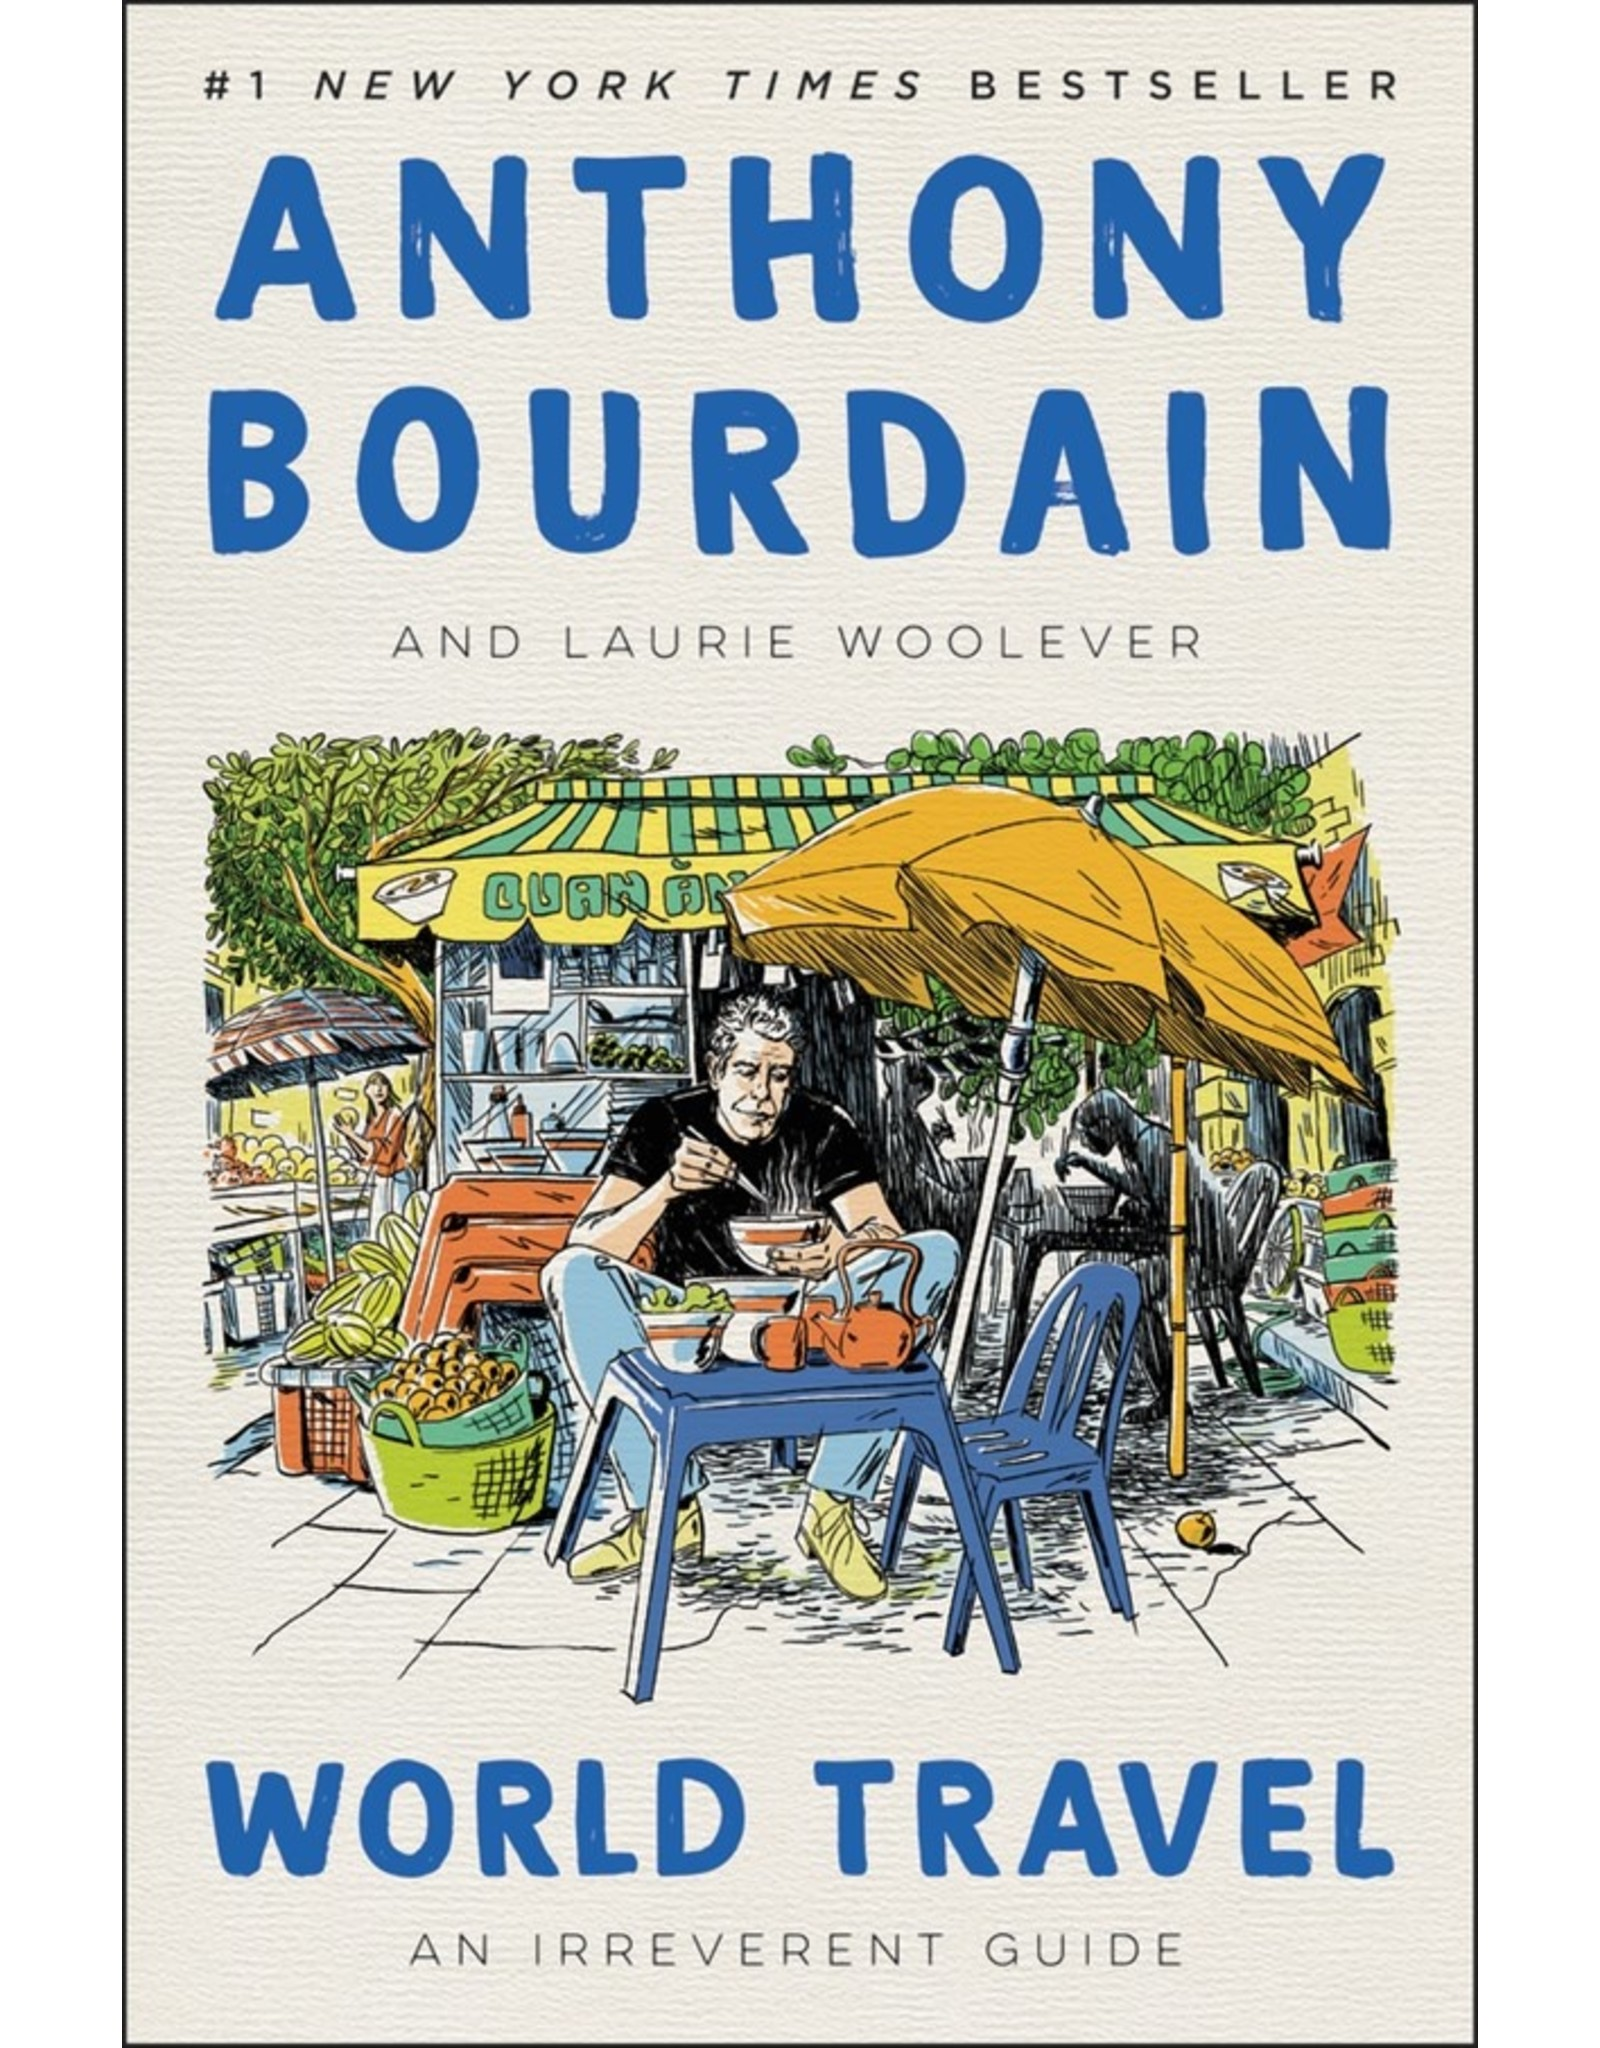 Books World Travel: An Irreverent Guide by Anthony Bourdain and Laurie Woolever ( Holiday Catalog 21)